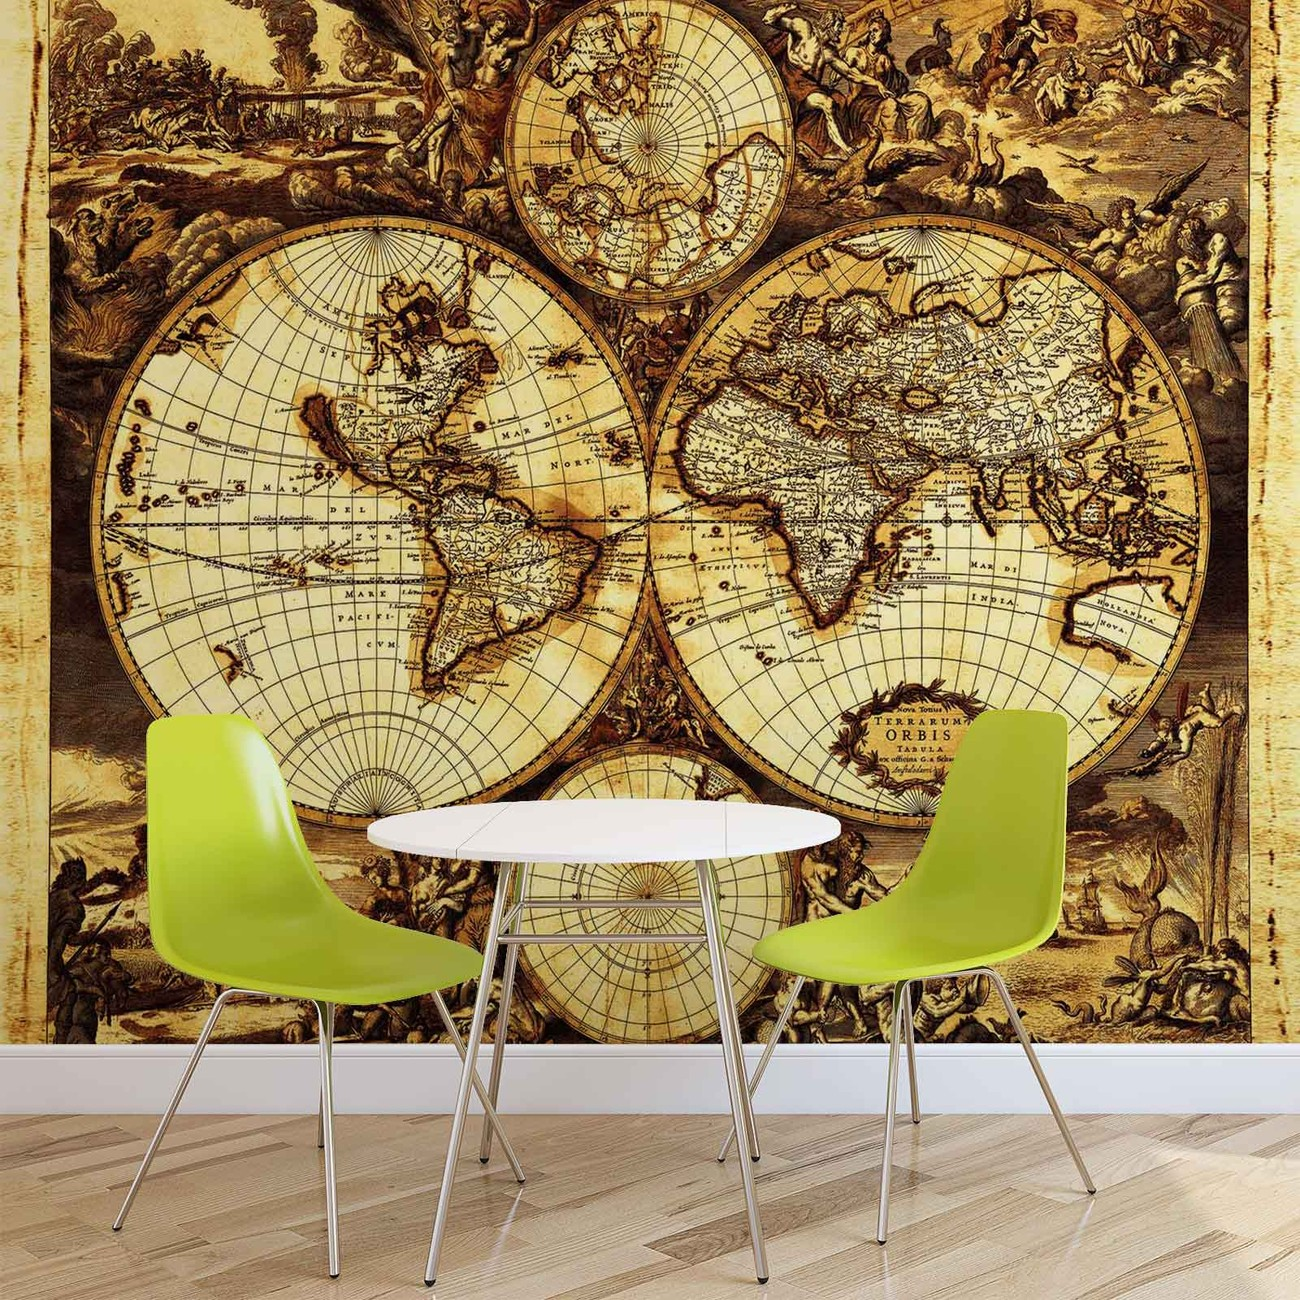 World map vintage wall paper mural buy at europosters for Antique map mural